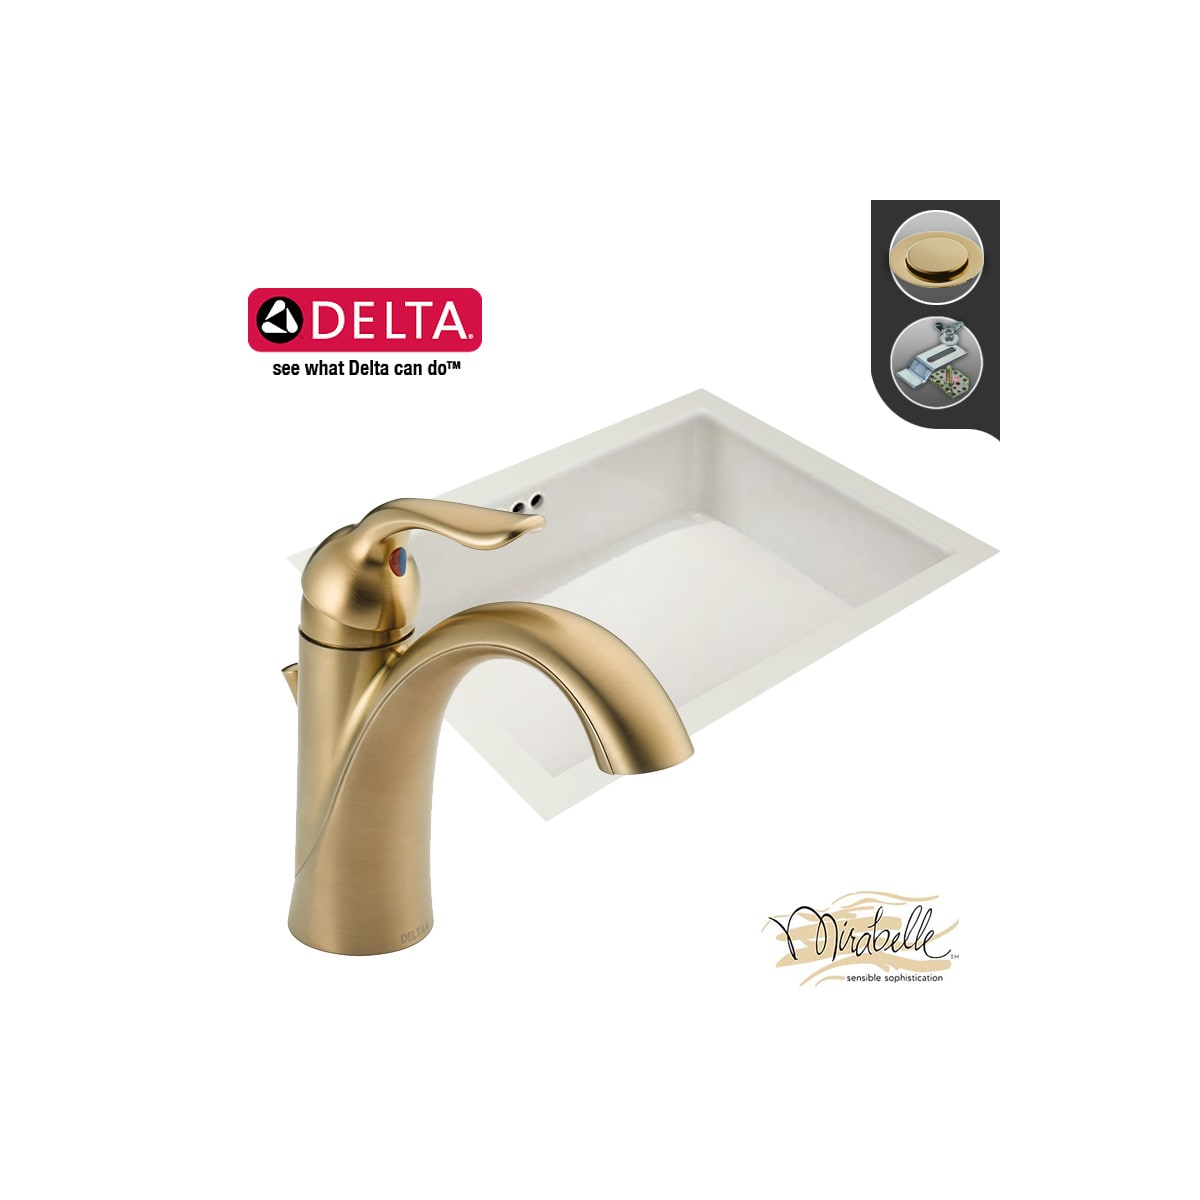 Build Smart Kits Undefined Stainless Steel Faucet Combo Mirabelle Lahara Two Handle Center Set Bathroom Parts Diagram Model 538 17 1 8 Porcelain Undermount Sink With Delta Single Hole And Drain